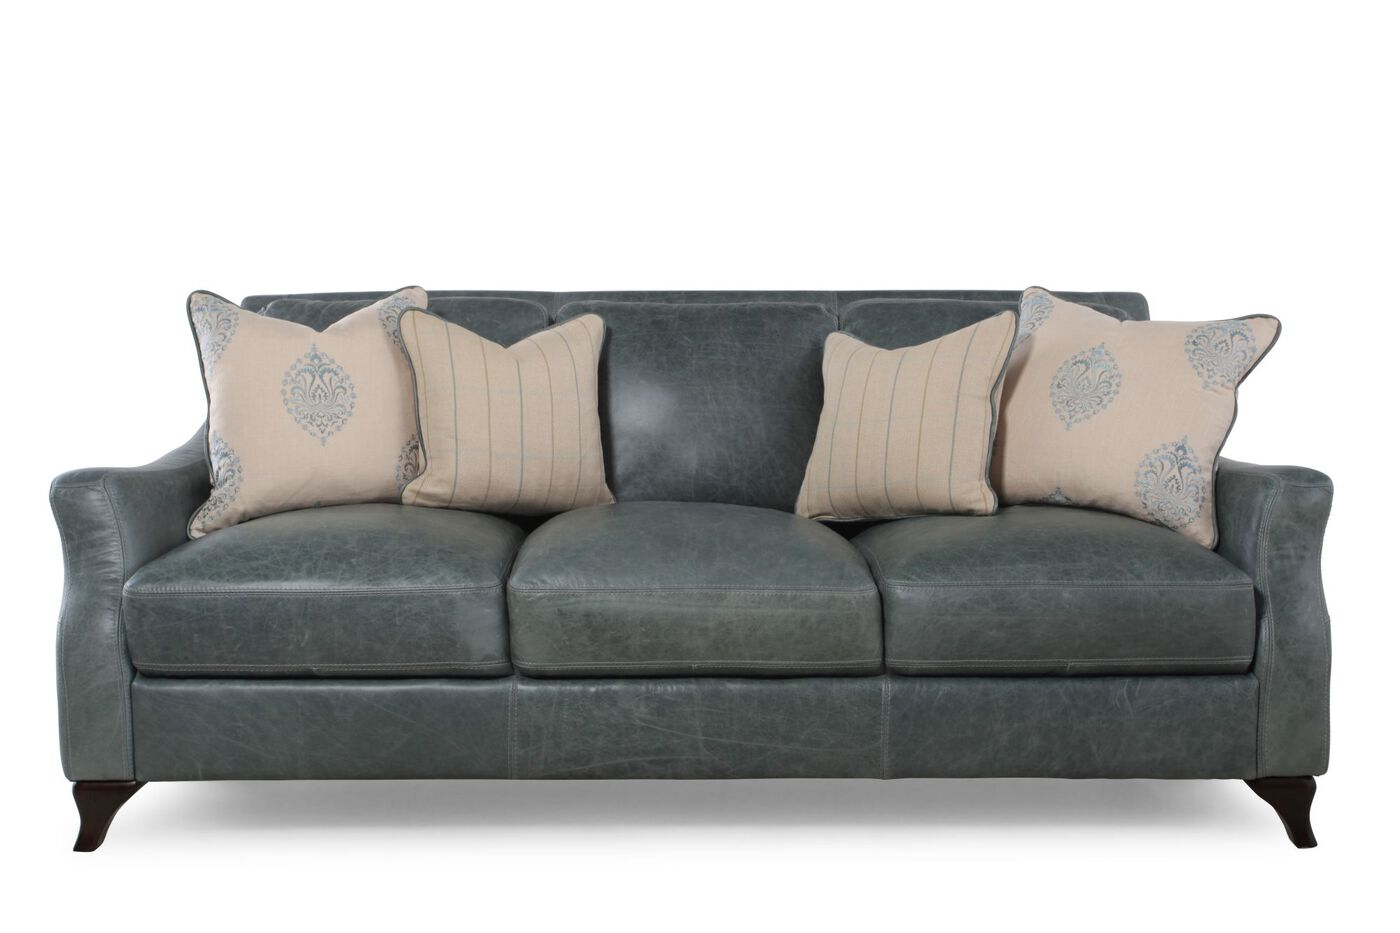 Distressed Leather Sofa In Teal Mathis Brothers Furniture